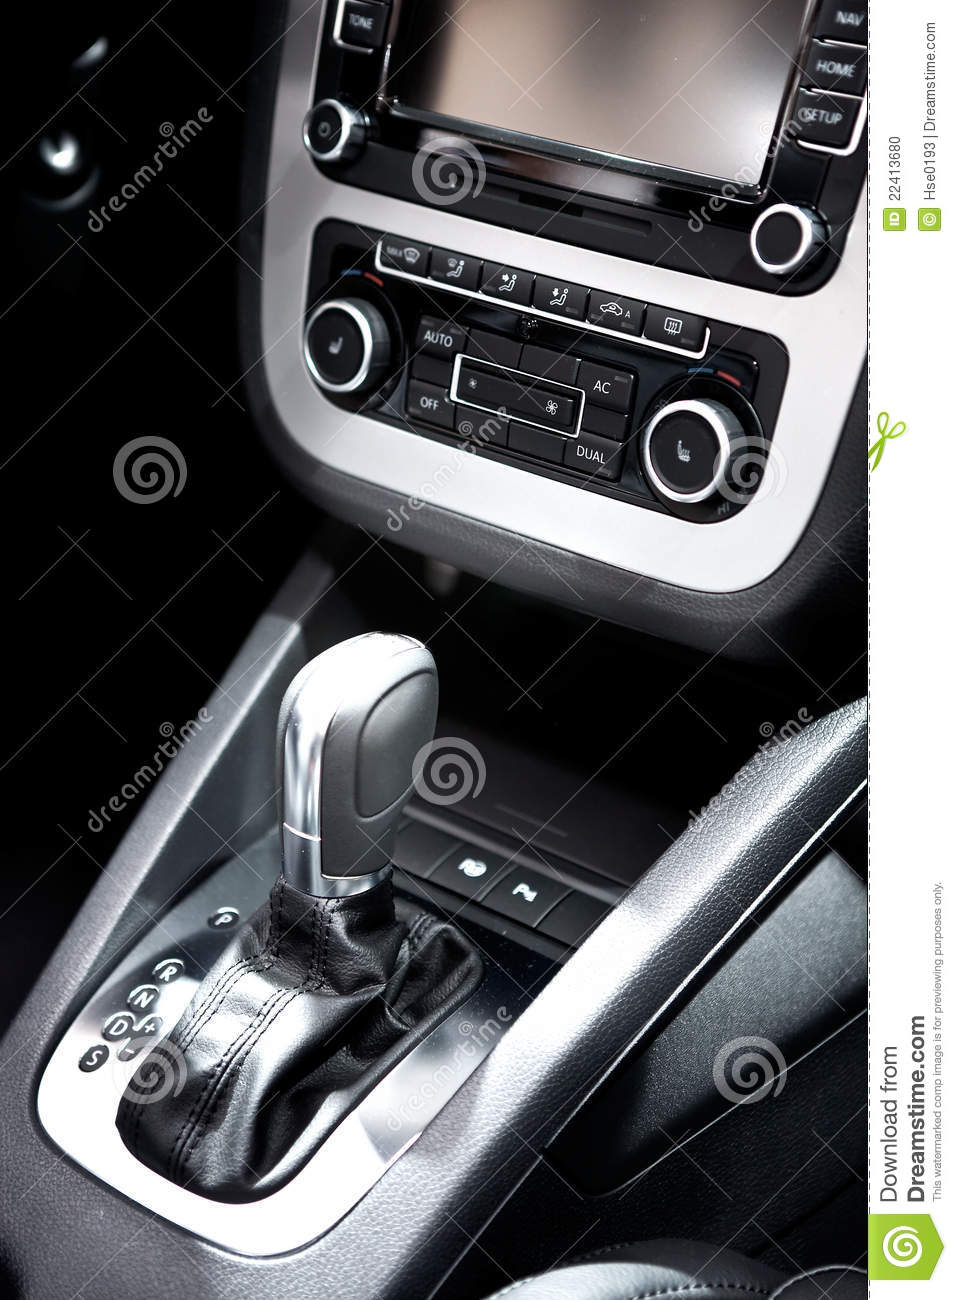 car interior detail stock photo image 22413680. Black Bedroom Furniture Sets. Home Design Ideas